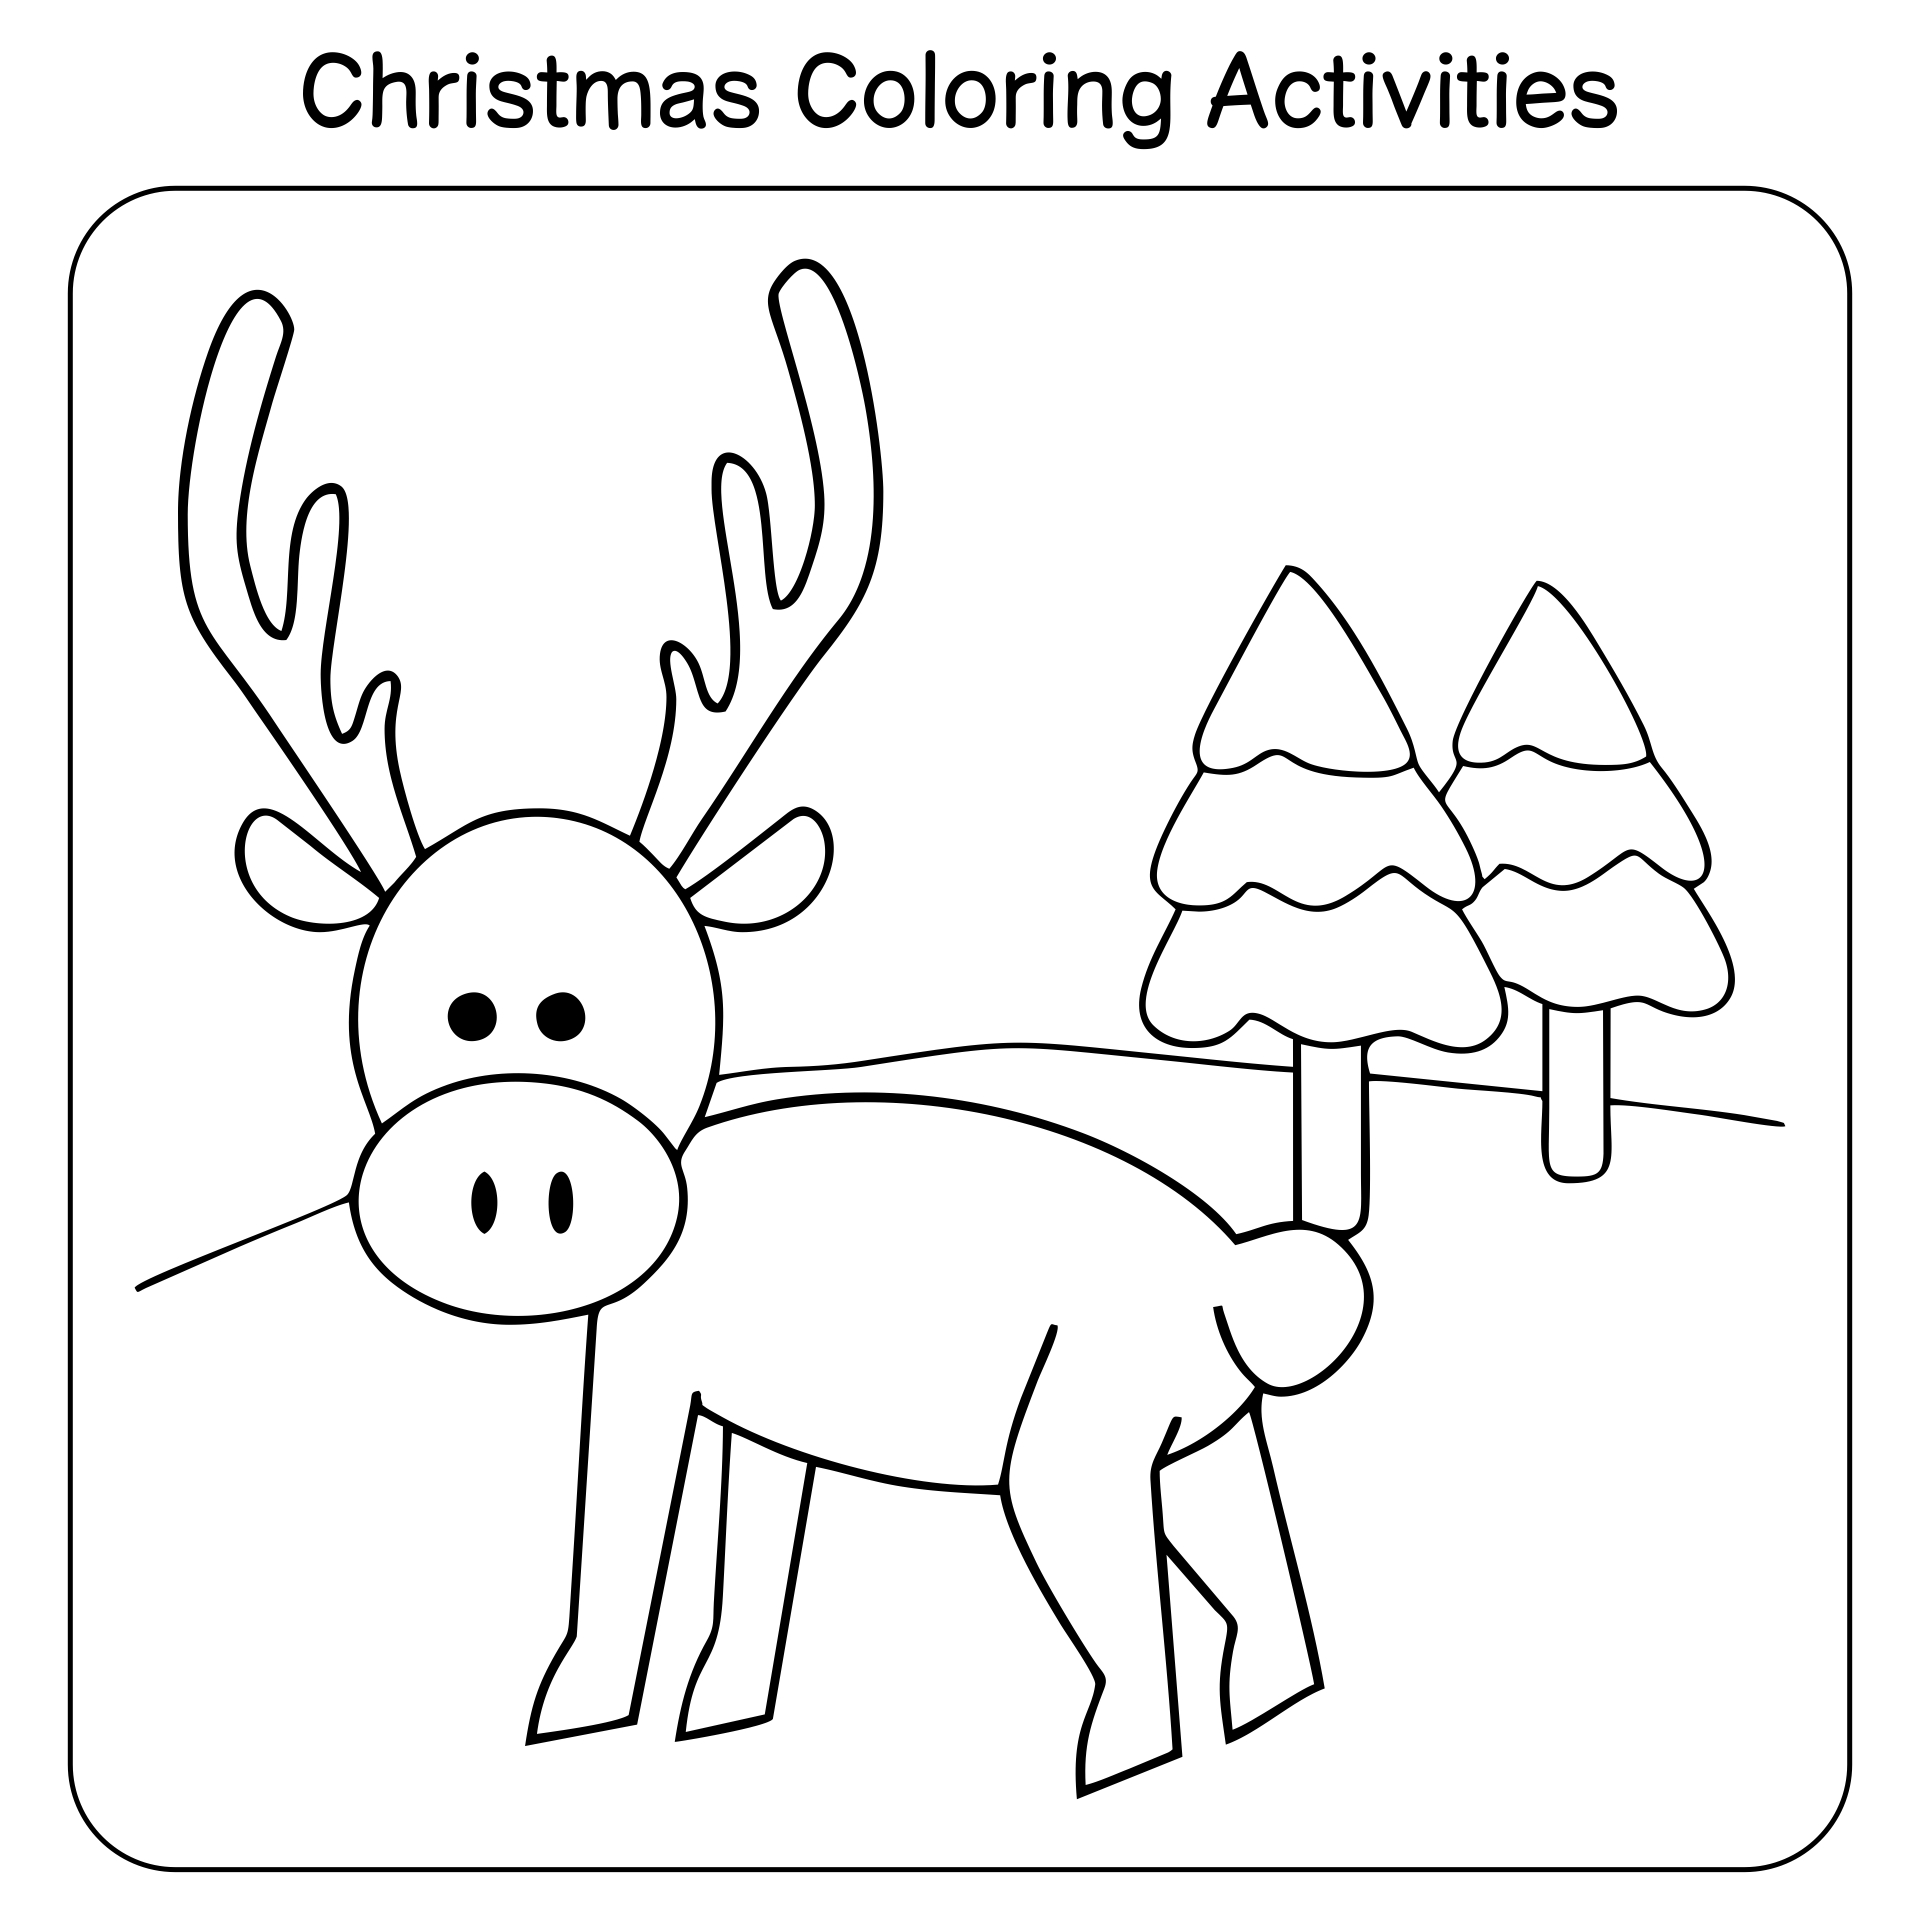 Preschool Christmas Activities Printables